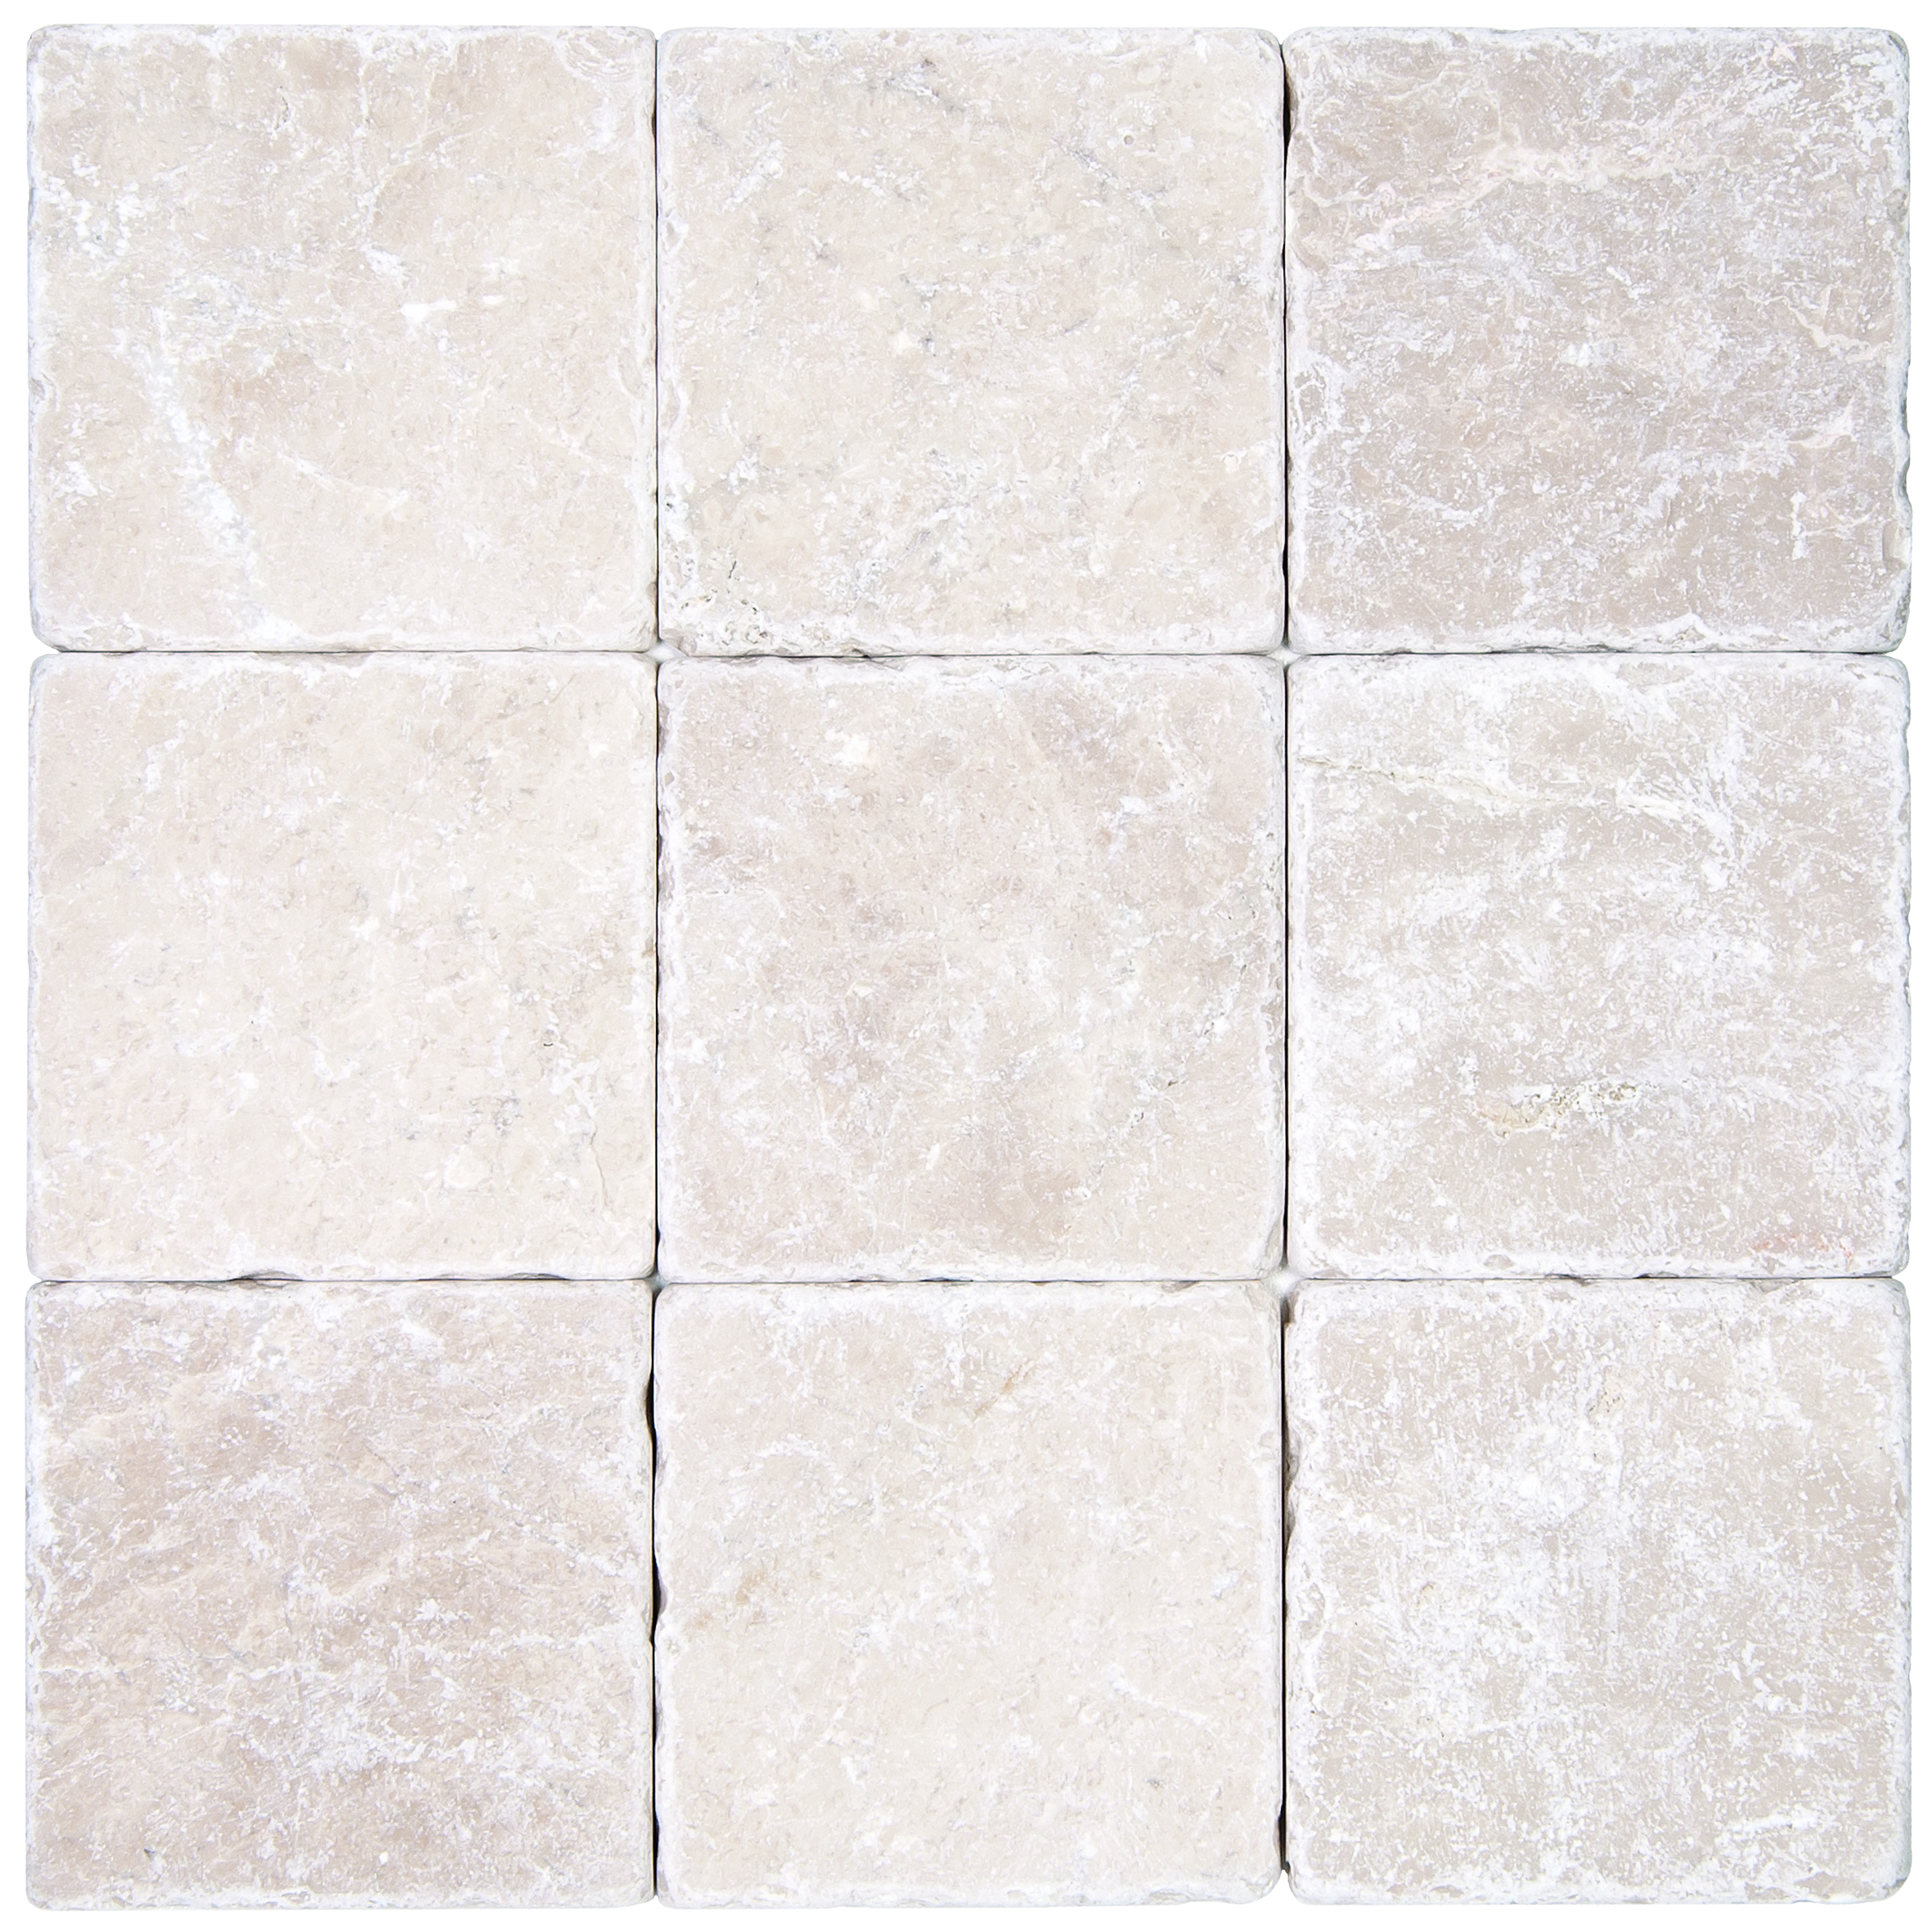 Botticino beige tumbled marble mosaic tiles 4 4 atlantic stone source for Tumbled glass tile